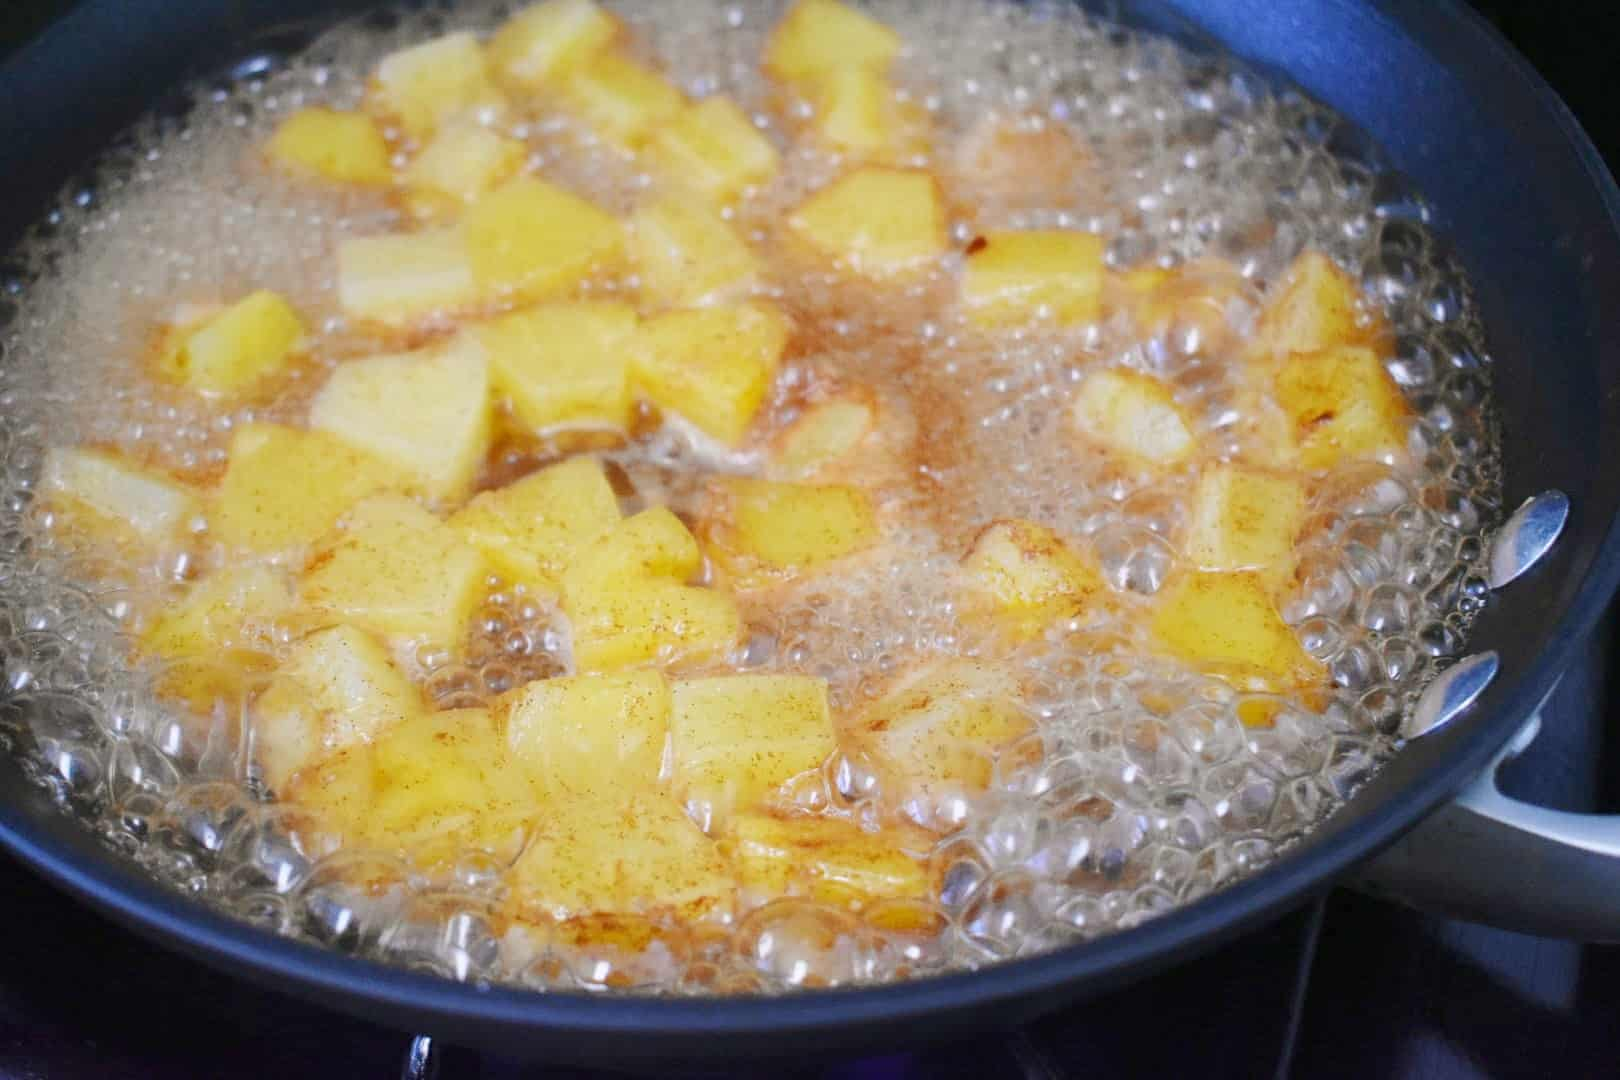 Pineapple compote in a pan